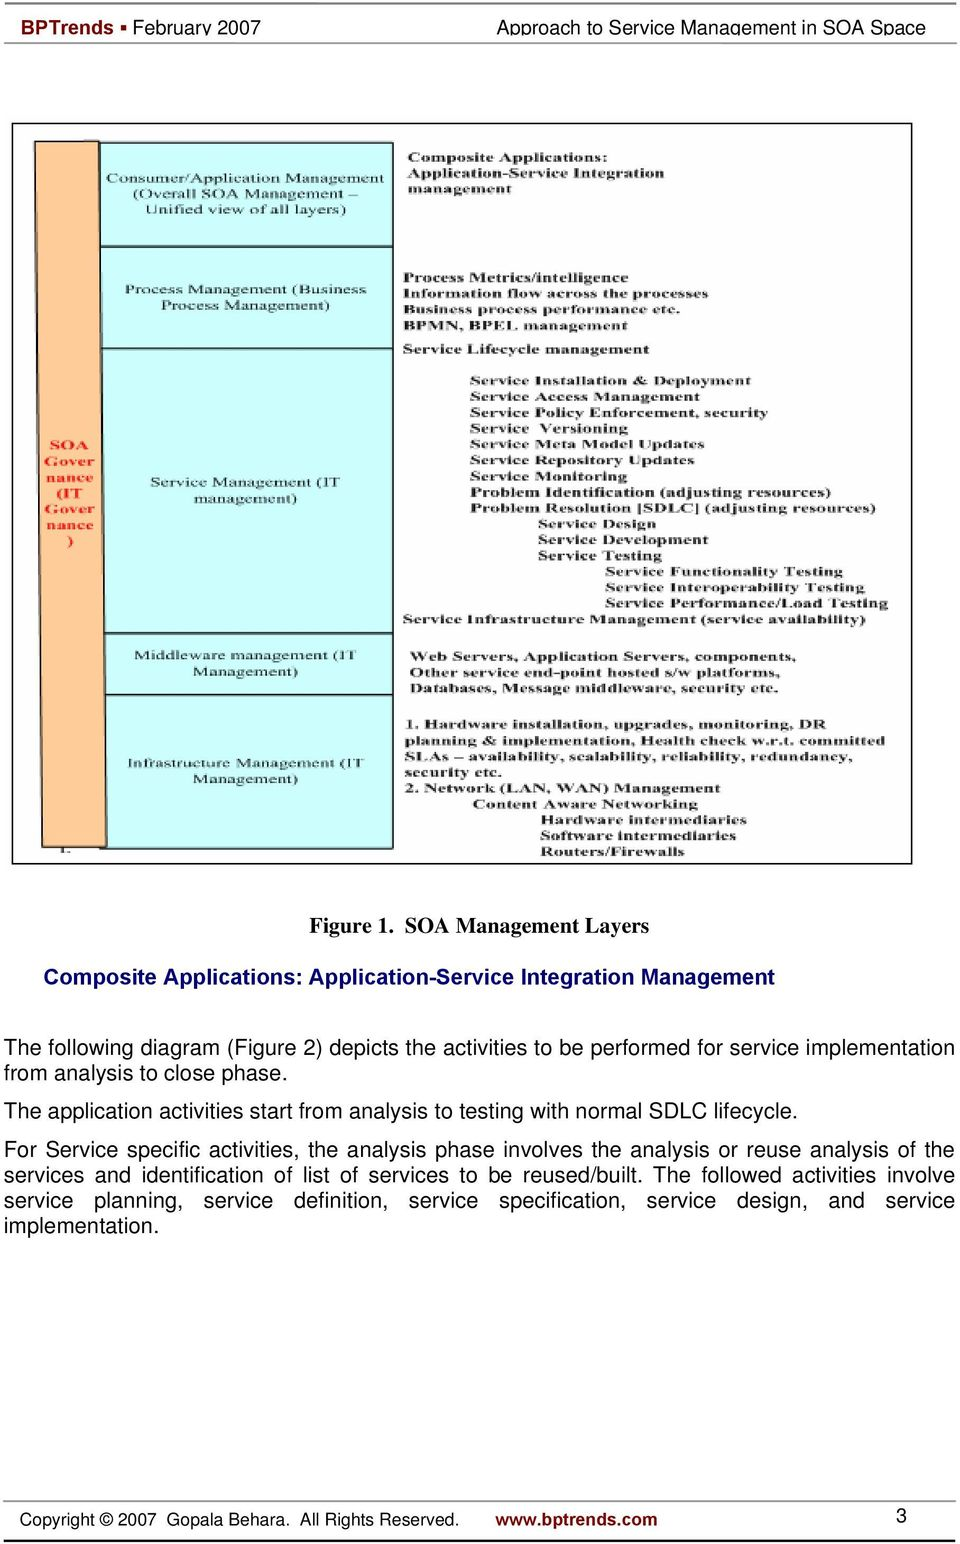 performed for service implementation from analysis to close phase. The application activities start from analysis to testing with normal SDLC lifecycle.